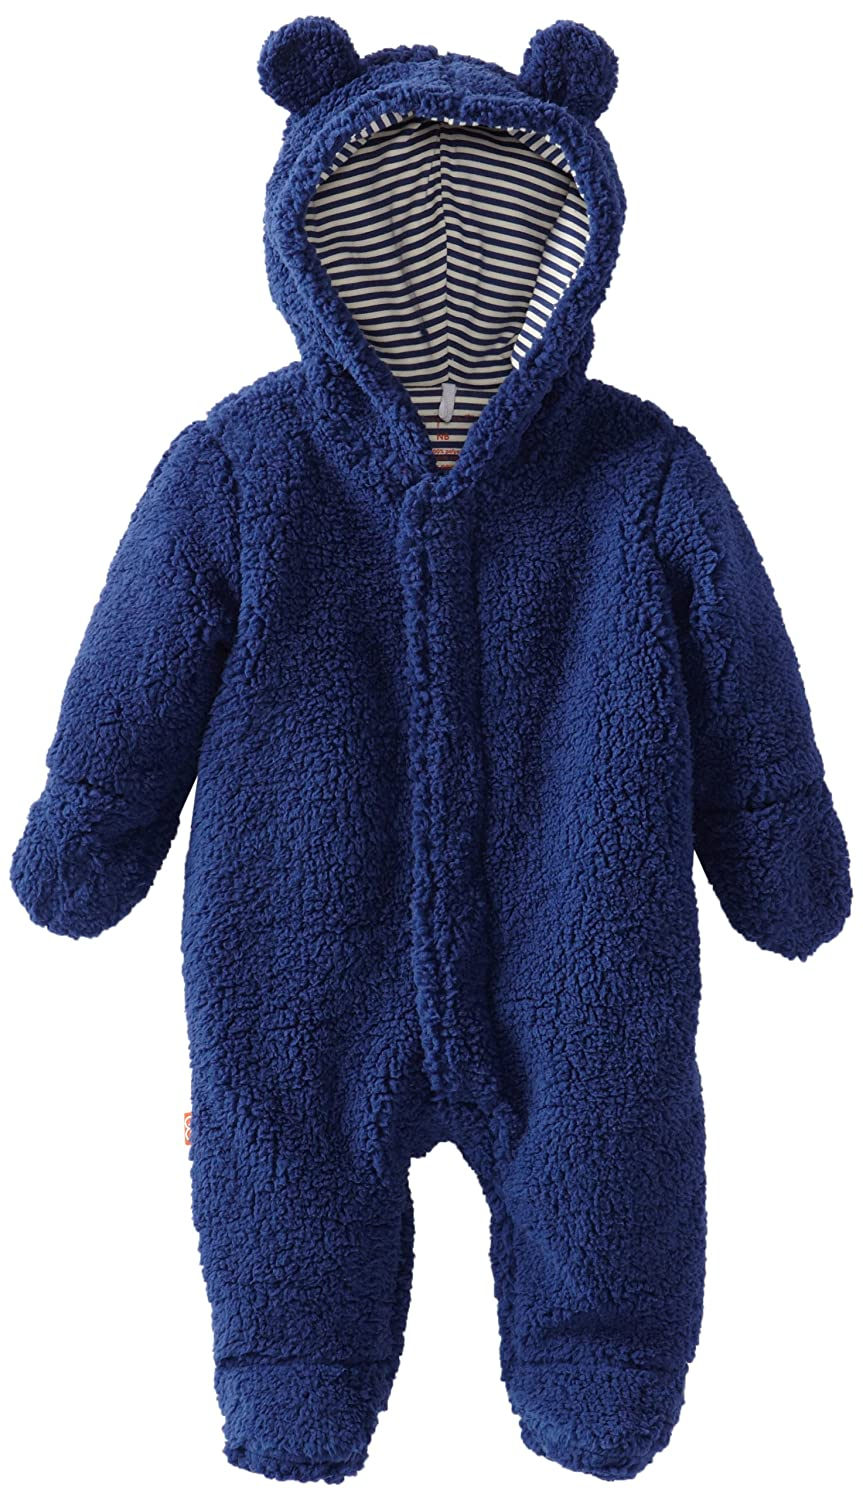 Magnificent Baby Baby-Boys Infant Hooded Bear Pram 5028